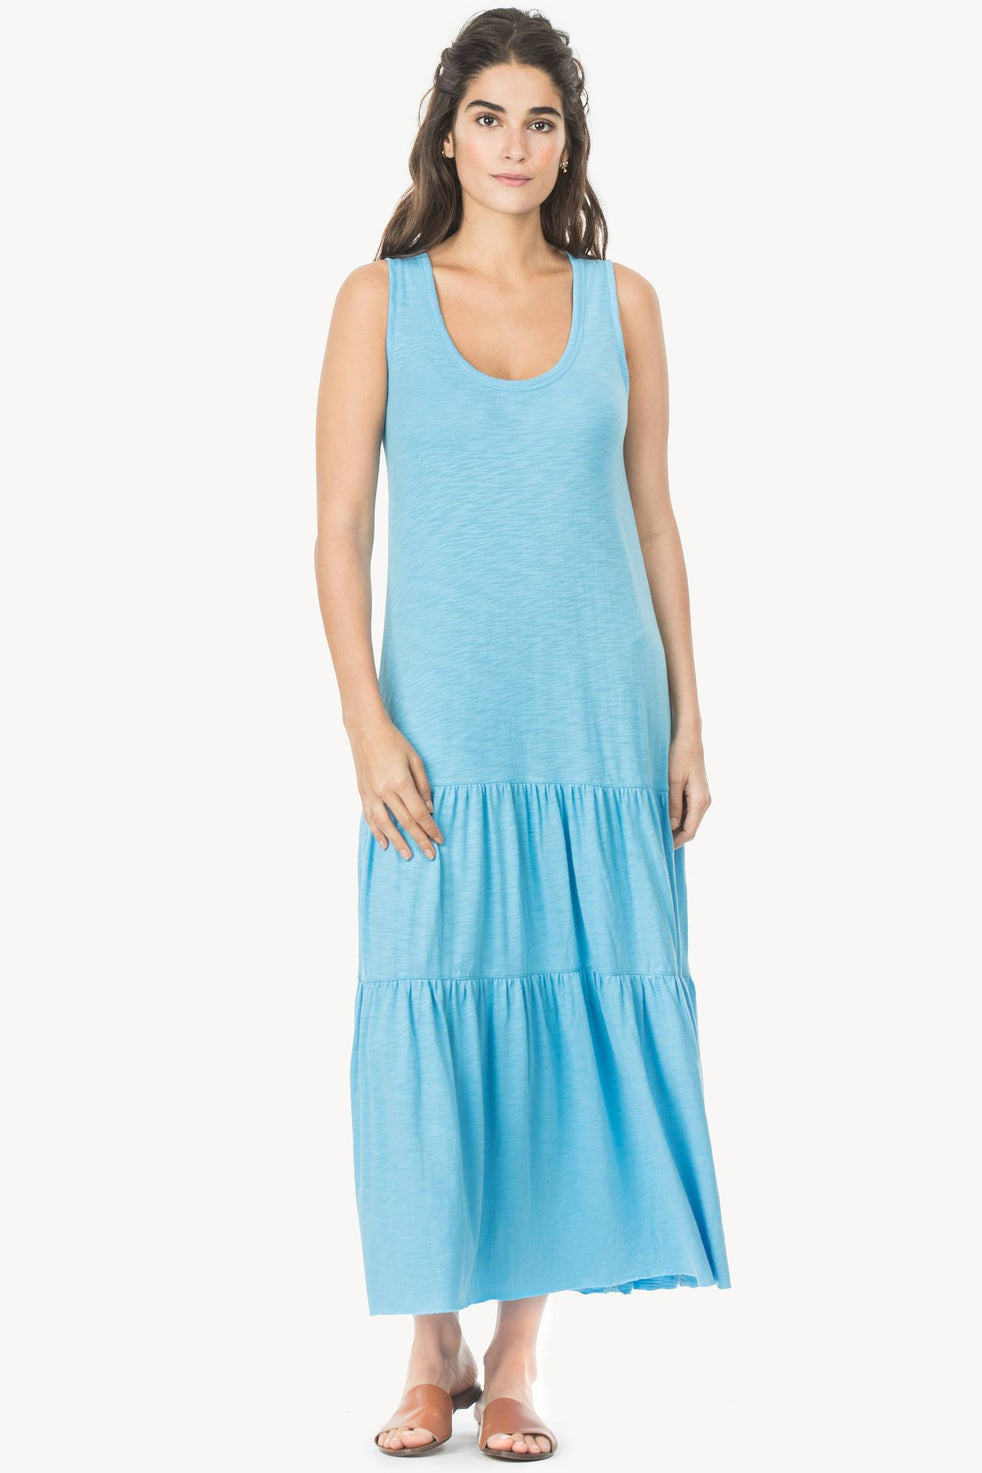 59c6d1494120b8 Flame Modal Dresses Collection | Comfortable Dresses for Travel